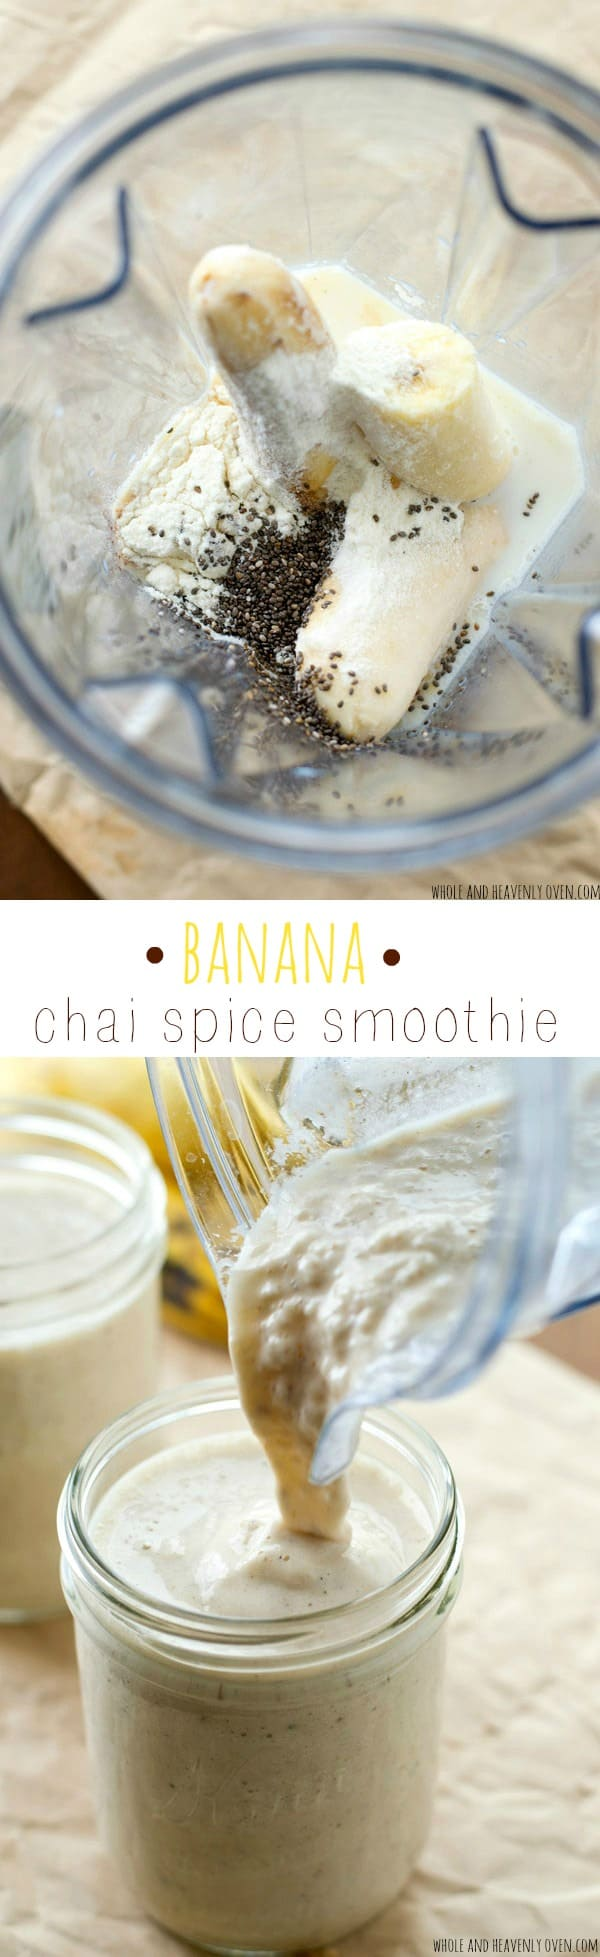 Super-creamy and loaded with banana and chai flavors, these luscious smoothies are a perfect post-workout energy boost! @WholeHeavenly